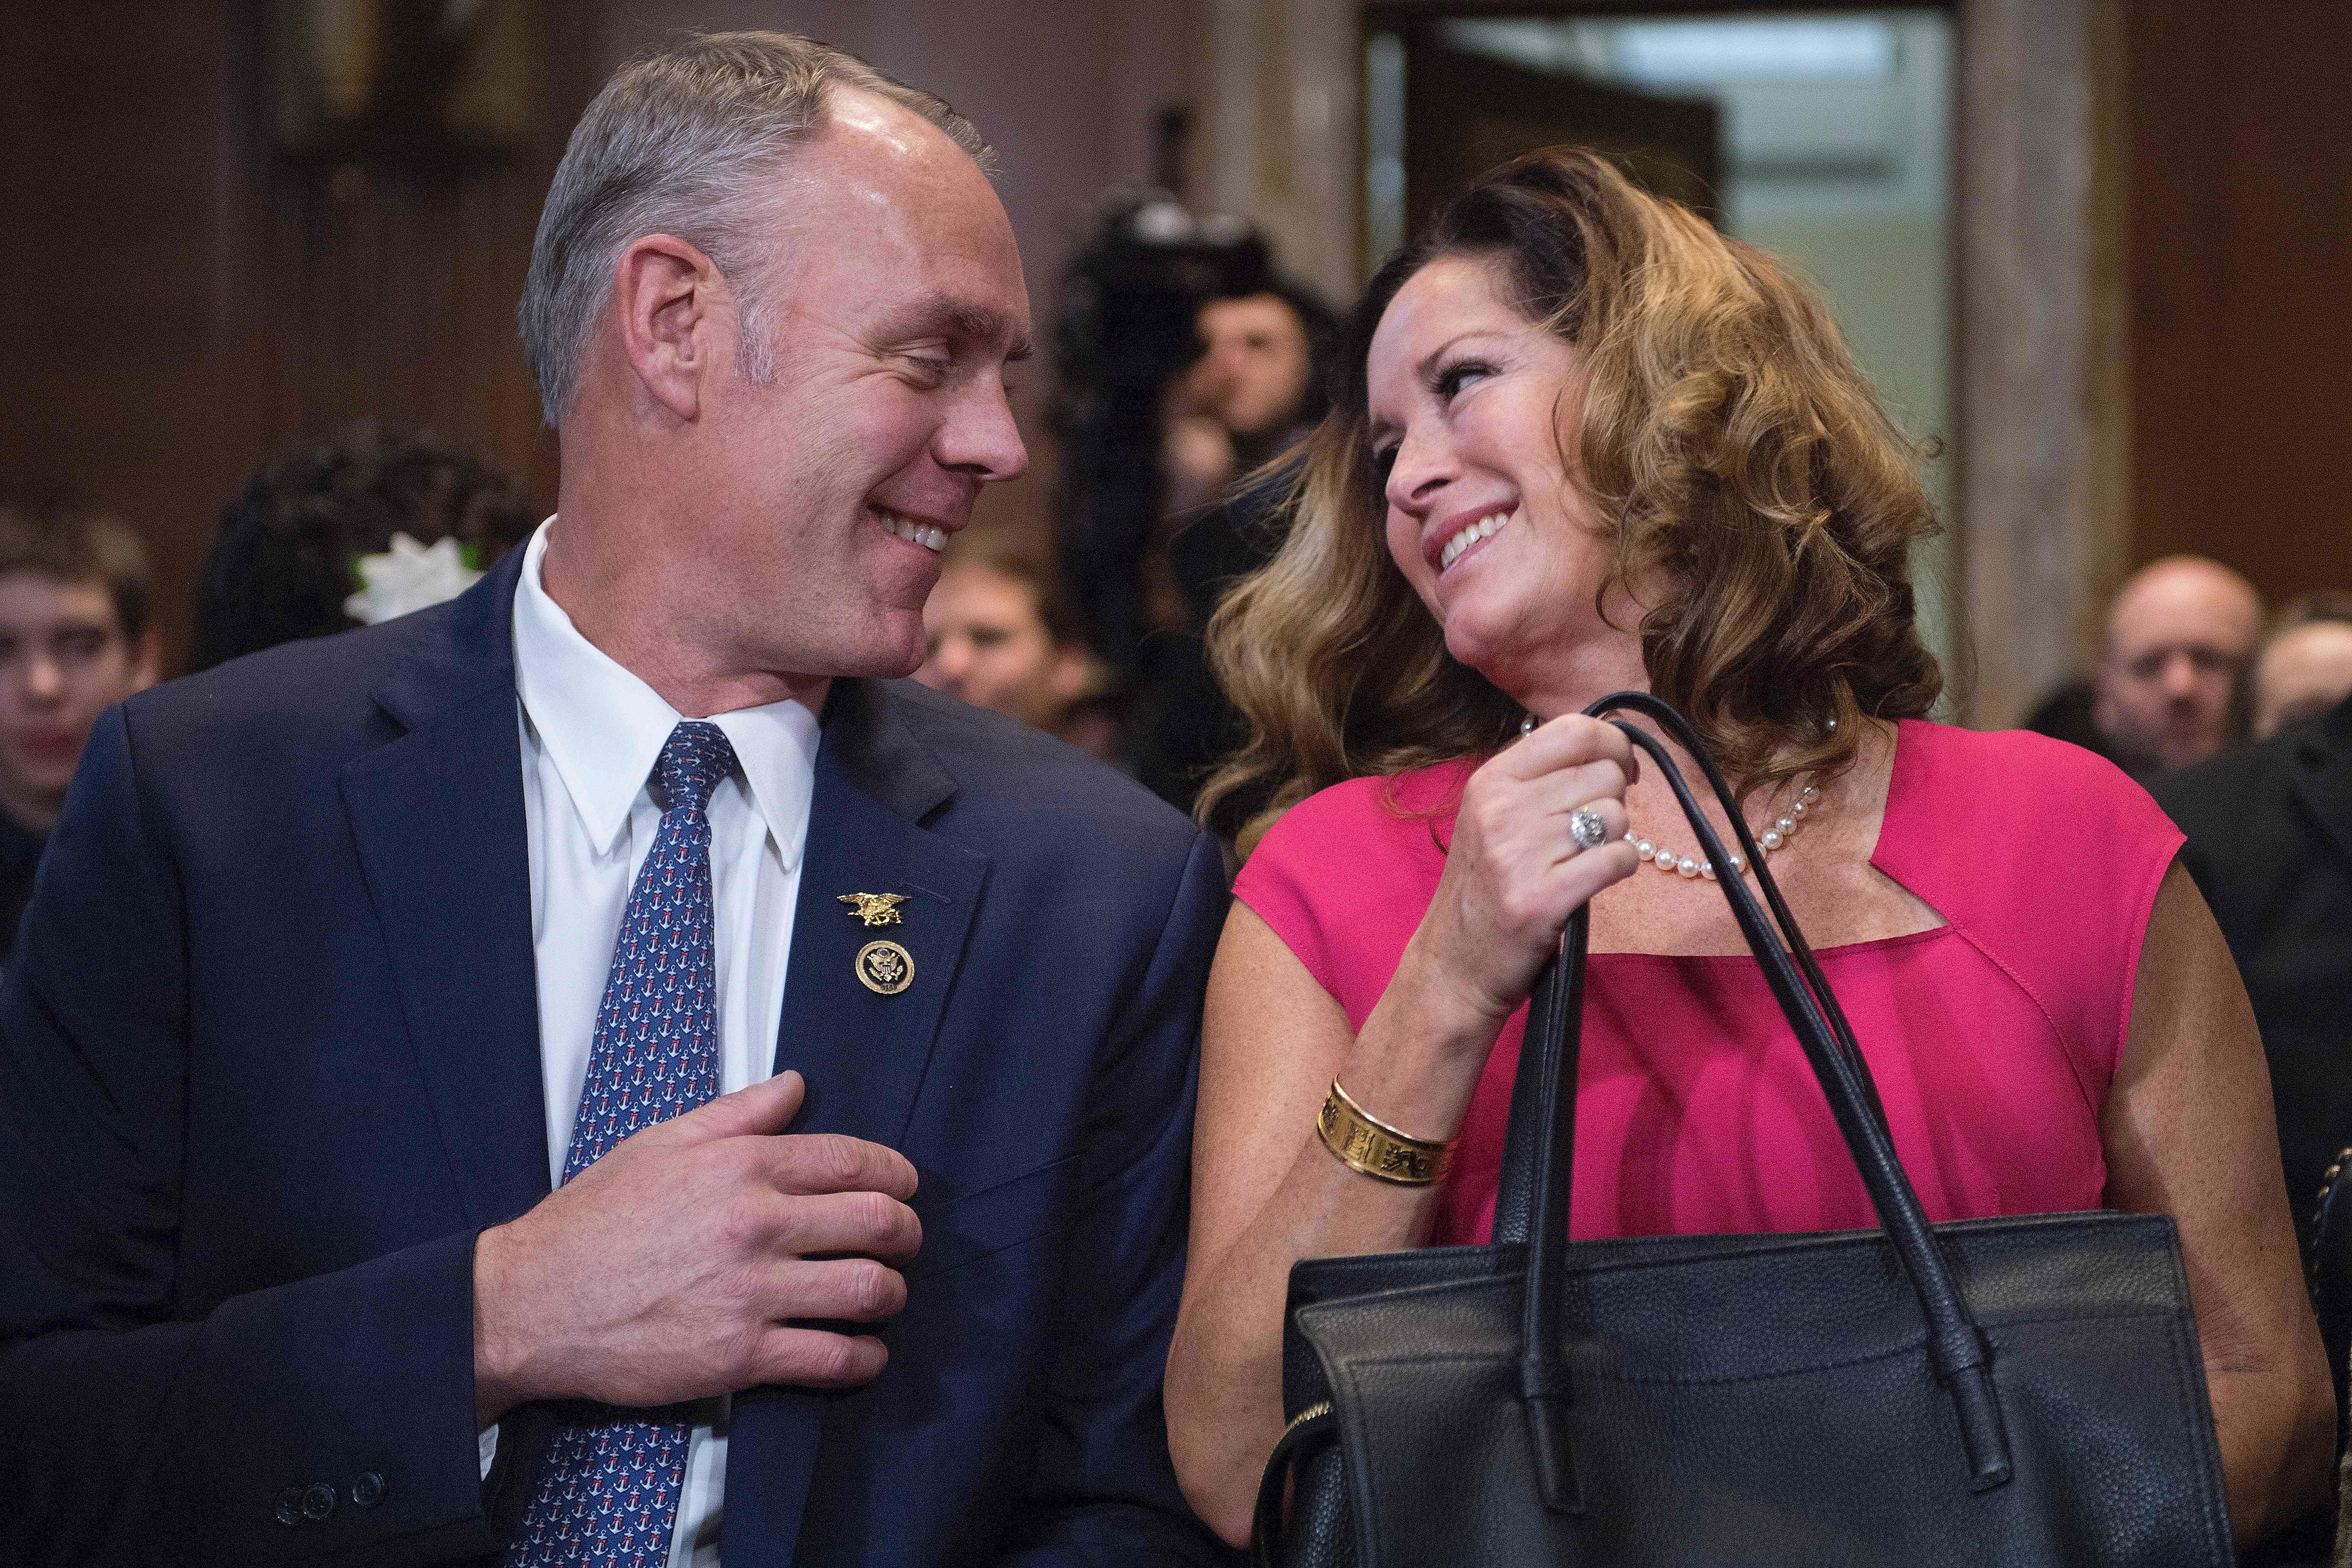 Ryan and Lolita Zinke had rented the house in Washington when he was first elected to Congress.